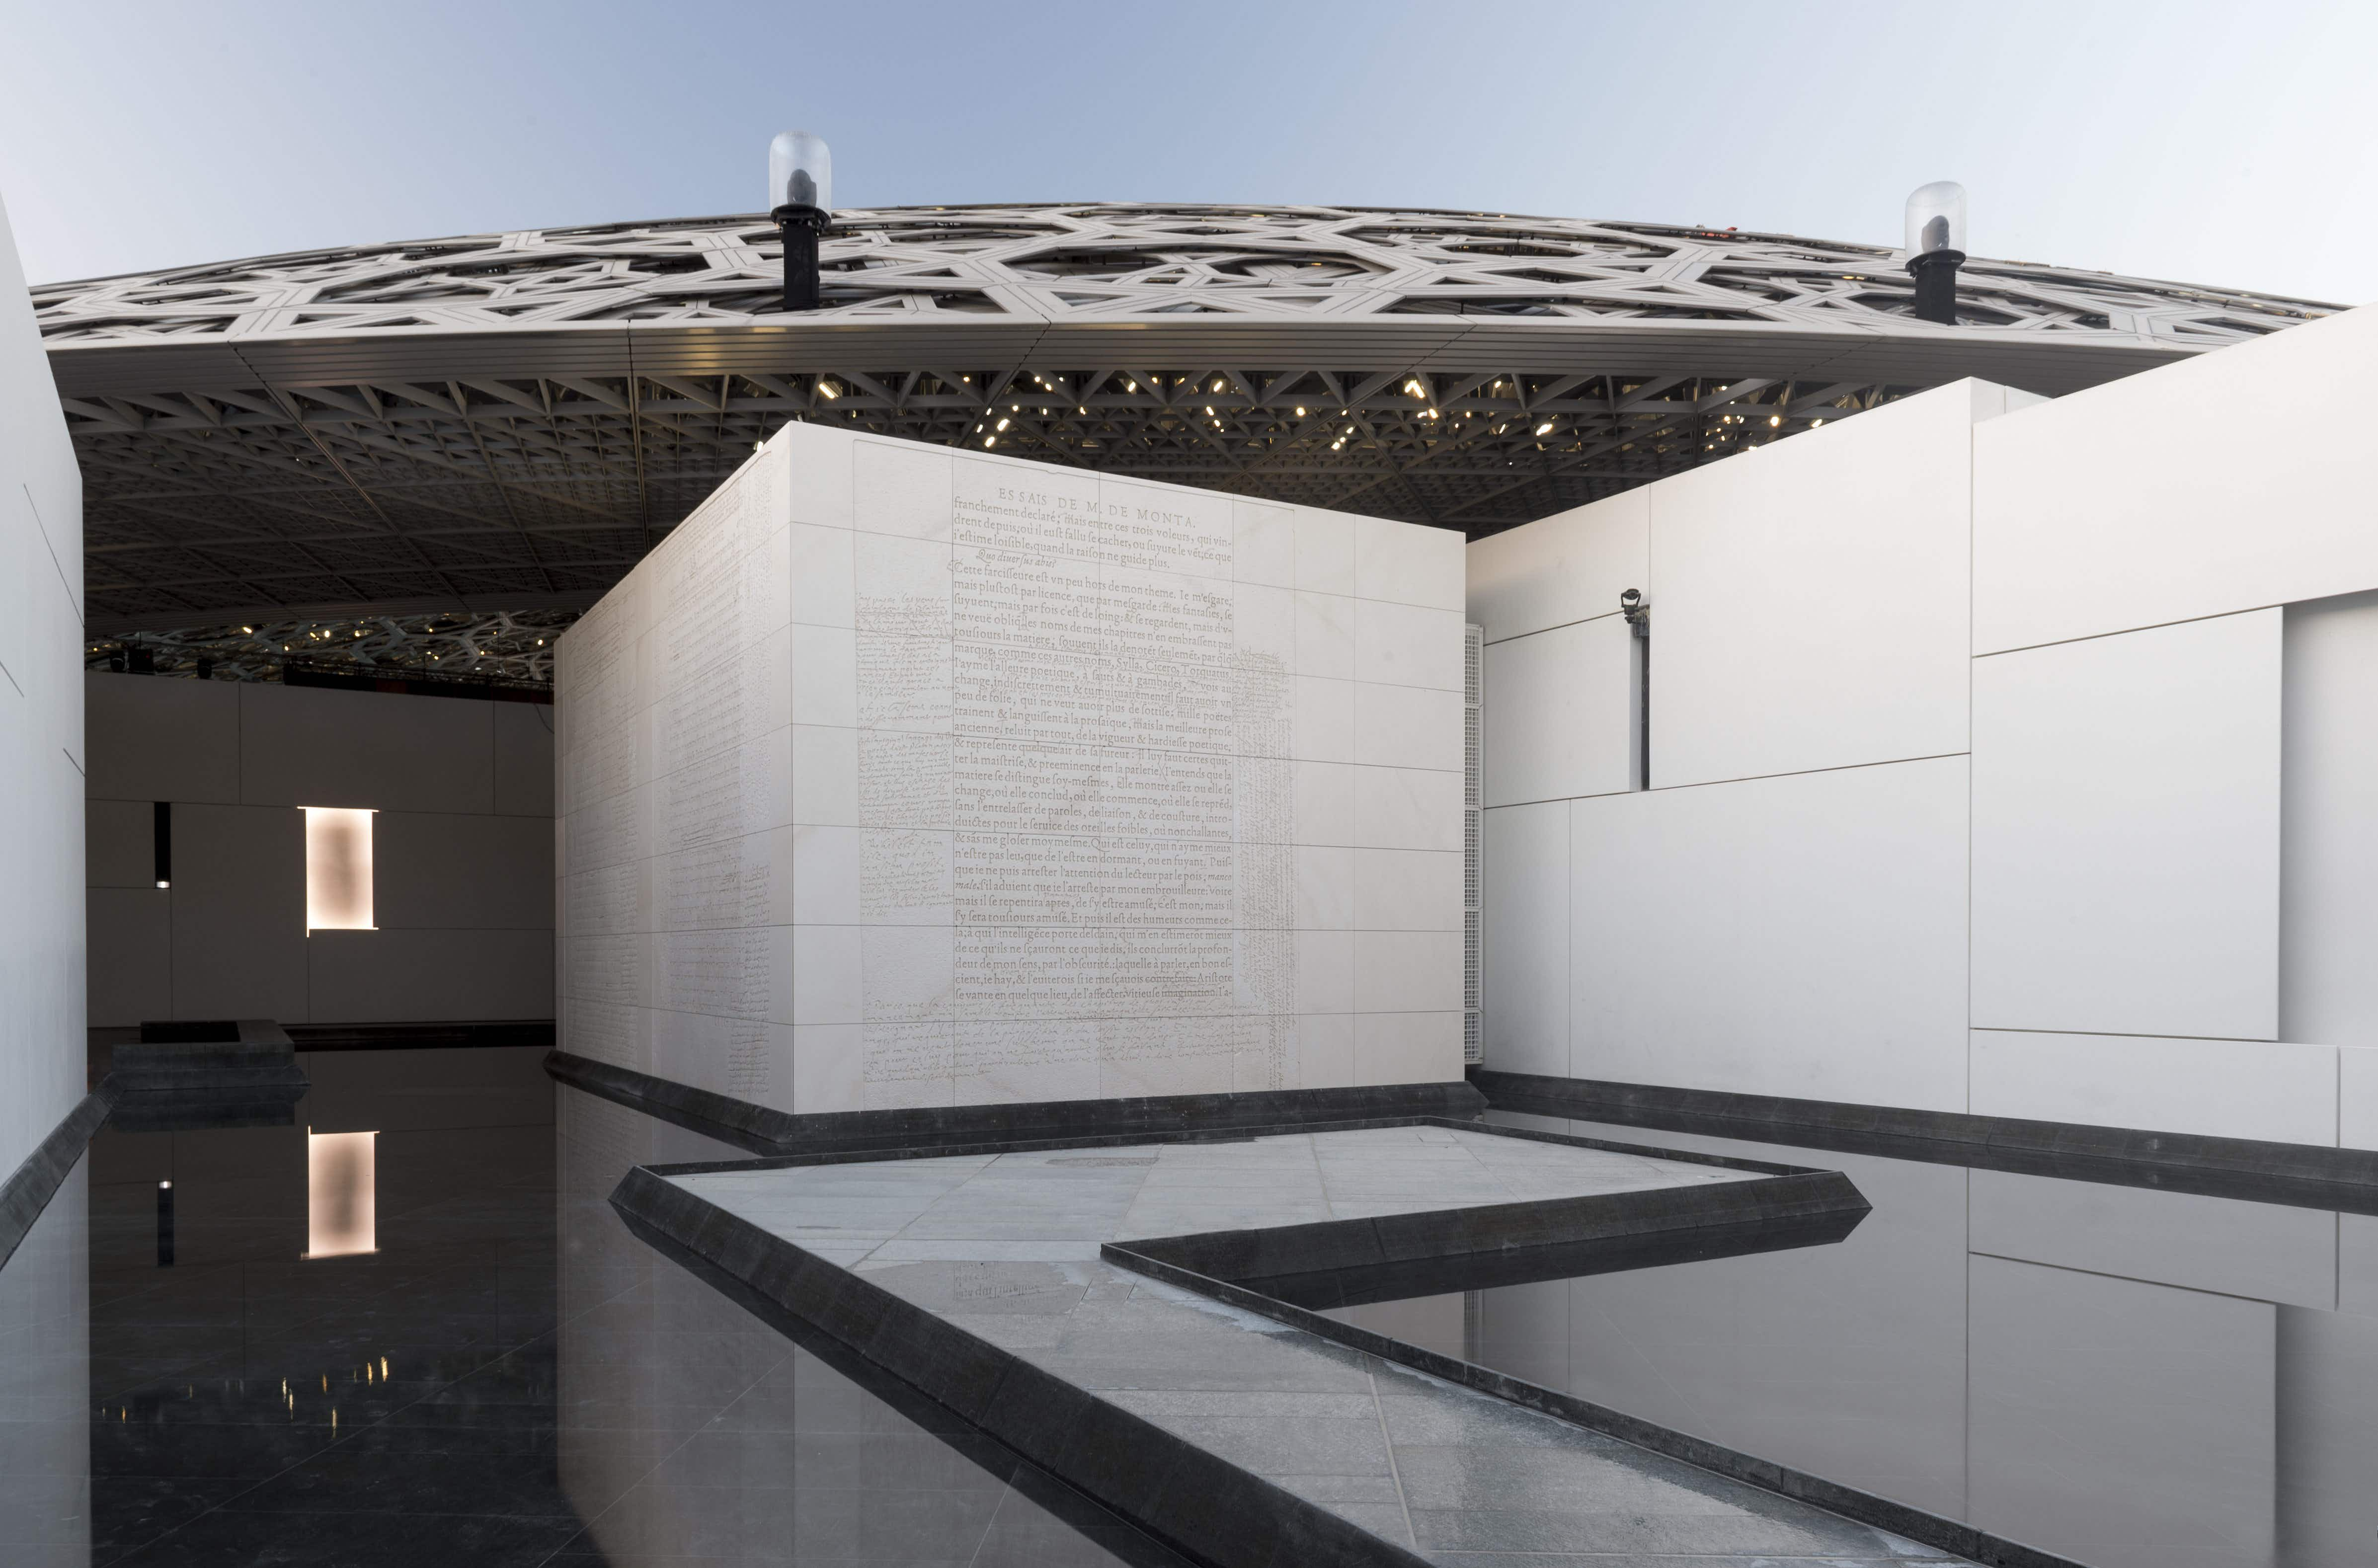 Take a first look inside the incredible Louvre Abu Dhabi